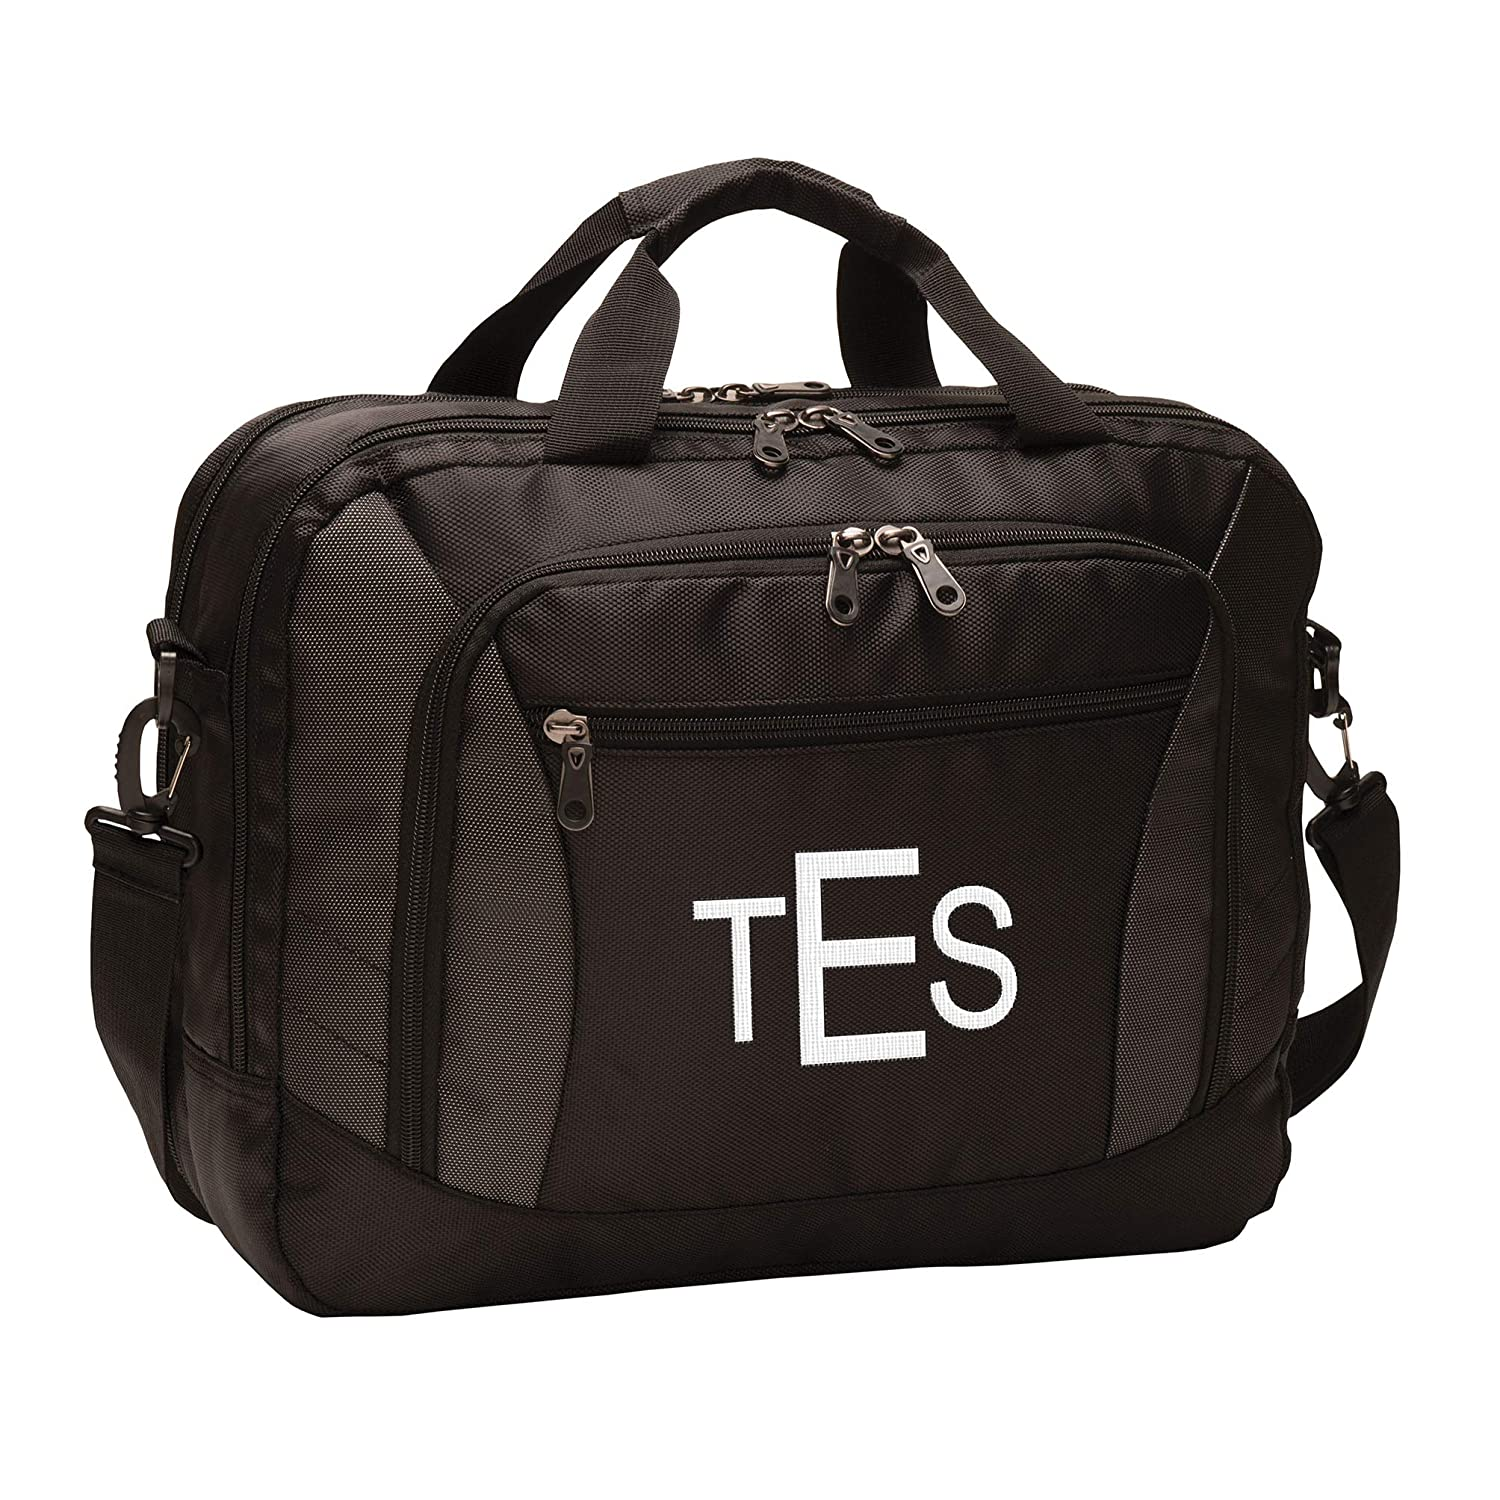 TSA Friendly Up to 15 inch Laptops Add Your Embroidered Logo Personalized Custom Commuter Brief Messenger Bag for Men /& Women